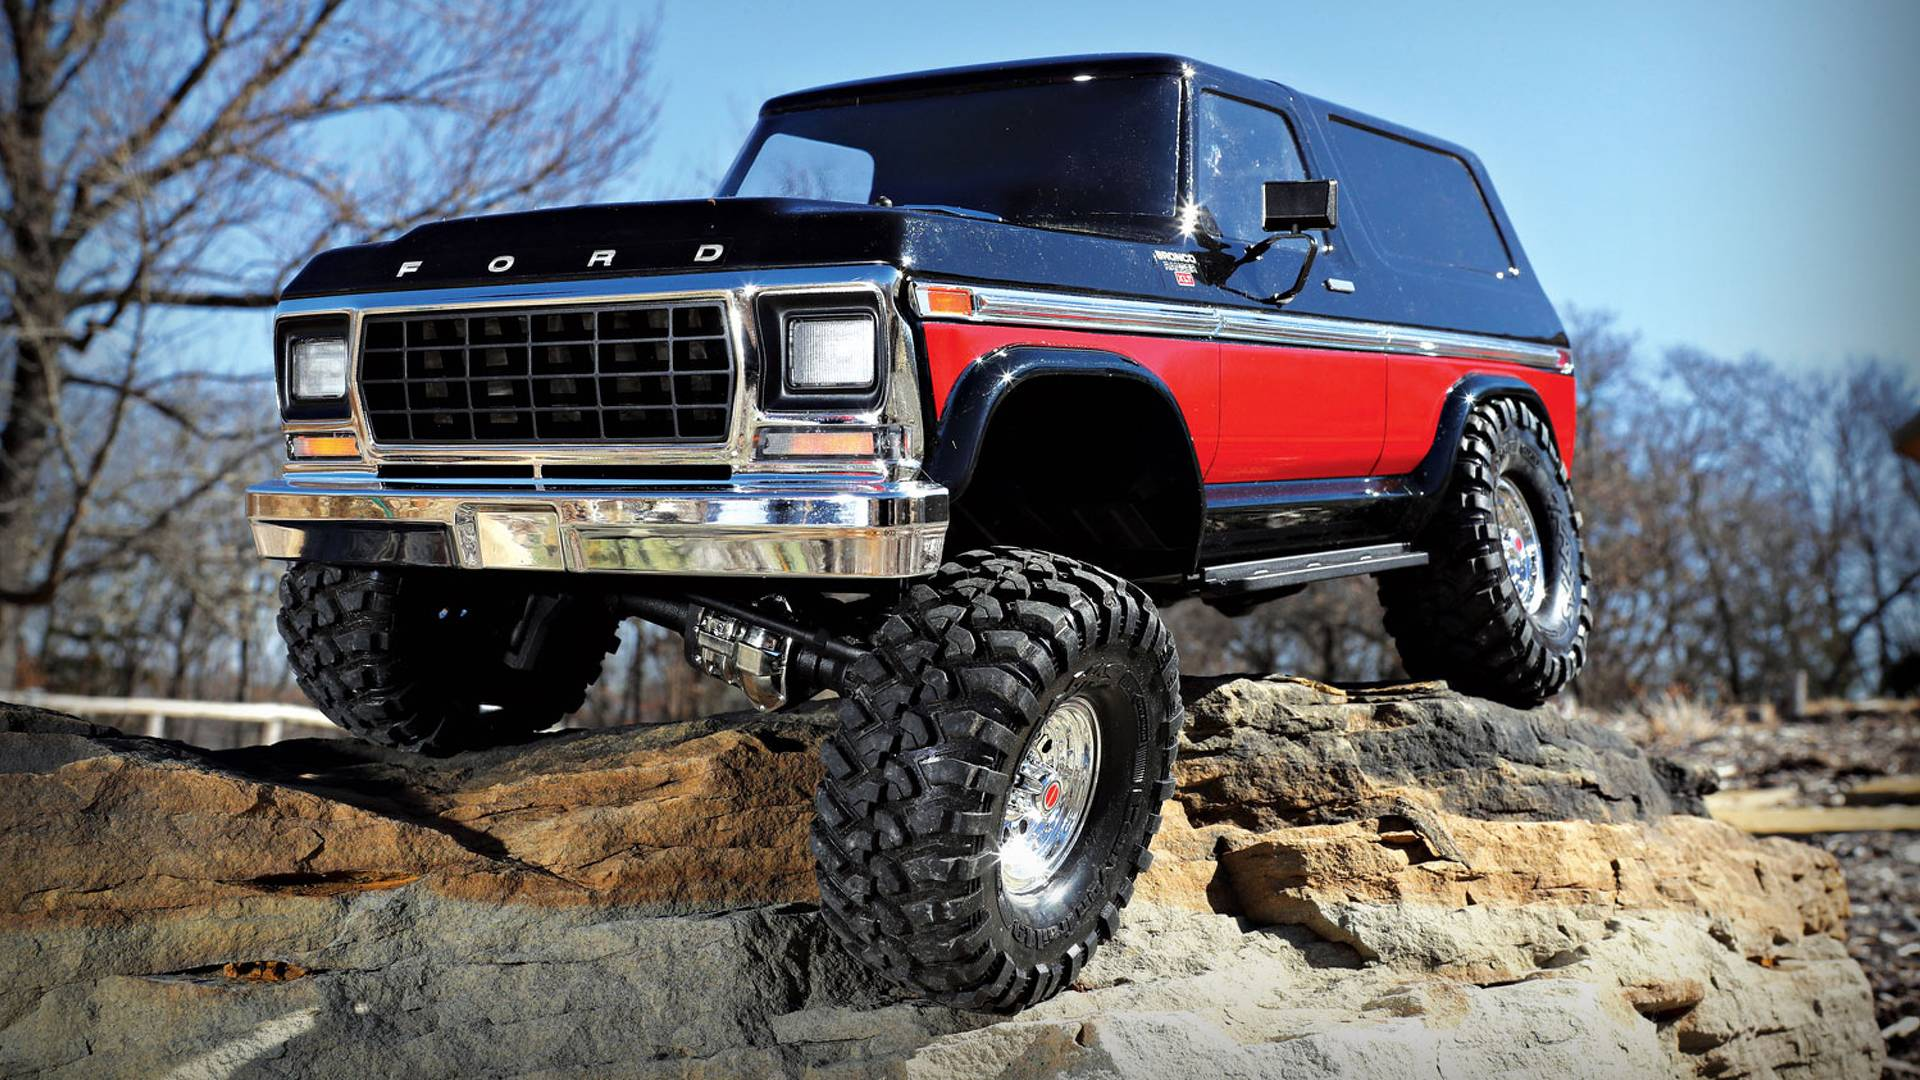 traxas.com with Traxxas R C 1979 Ford Bronco 2 Bm on Traxxas Officially Unveils E Revo 2 0 moreover Watch further Traxxas Announces Courtney Force Pink Edition Models further Traxxas Ford Fiesta St Rally in addition Traxxas St ede 2wd 110 Brushed Monster Truck.